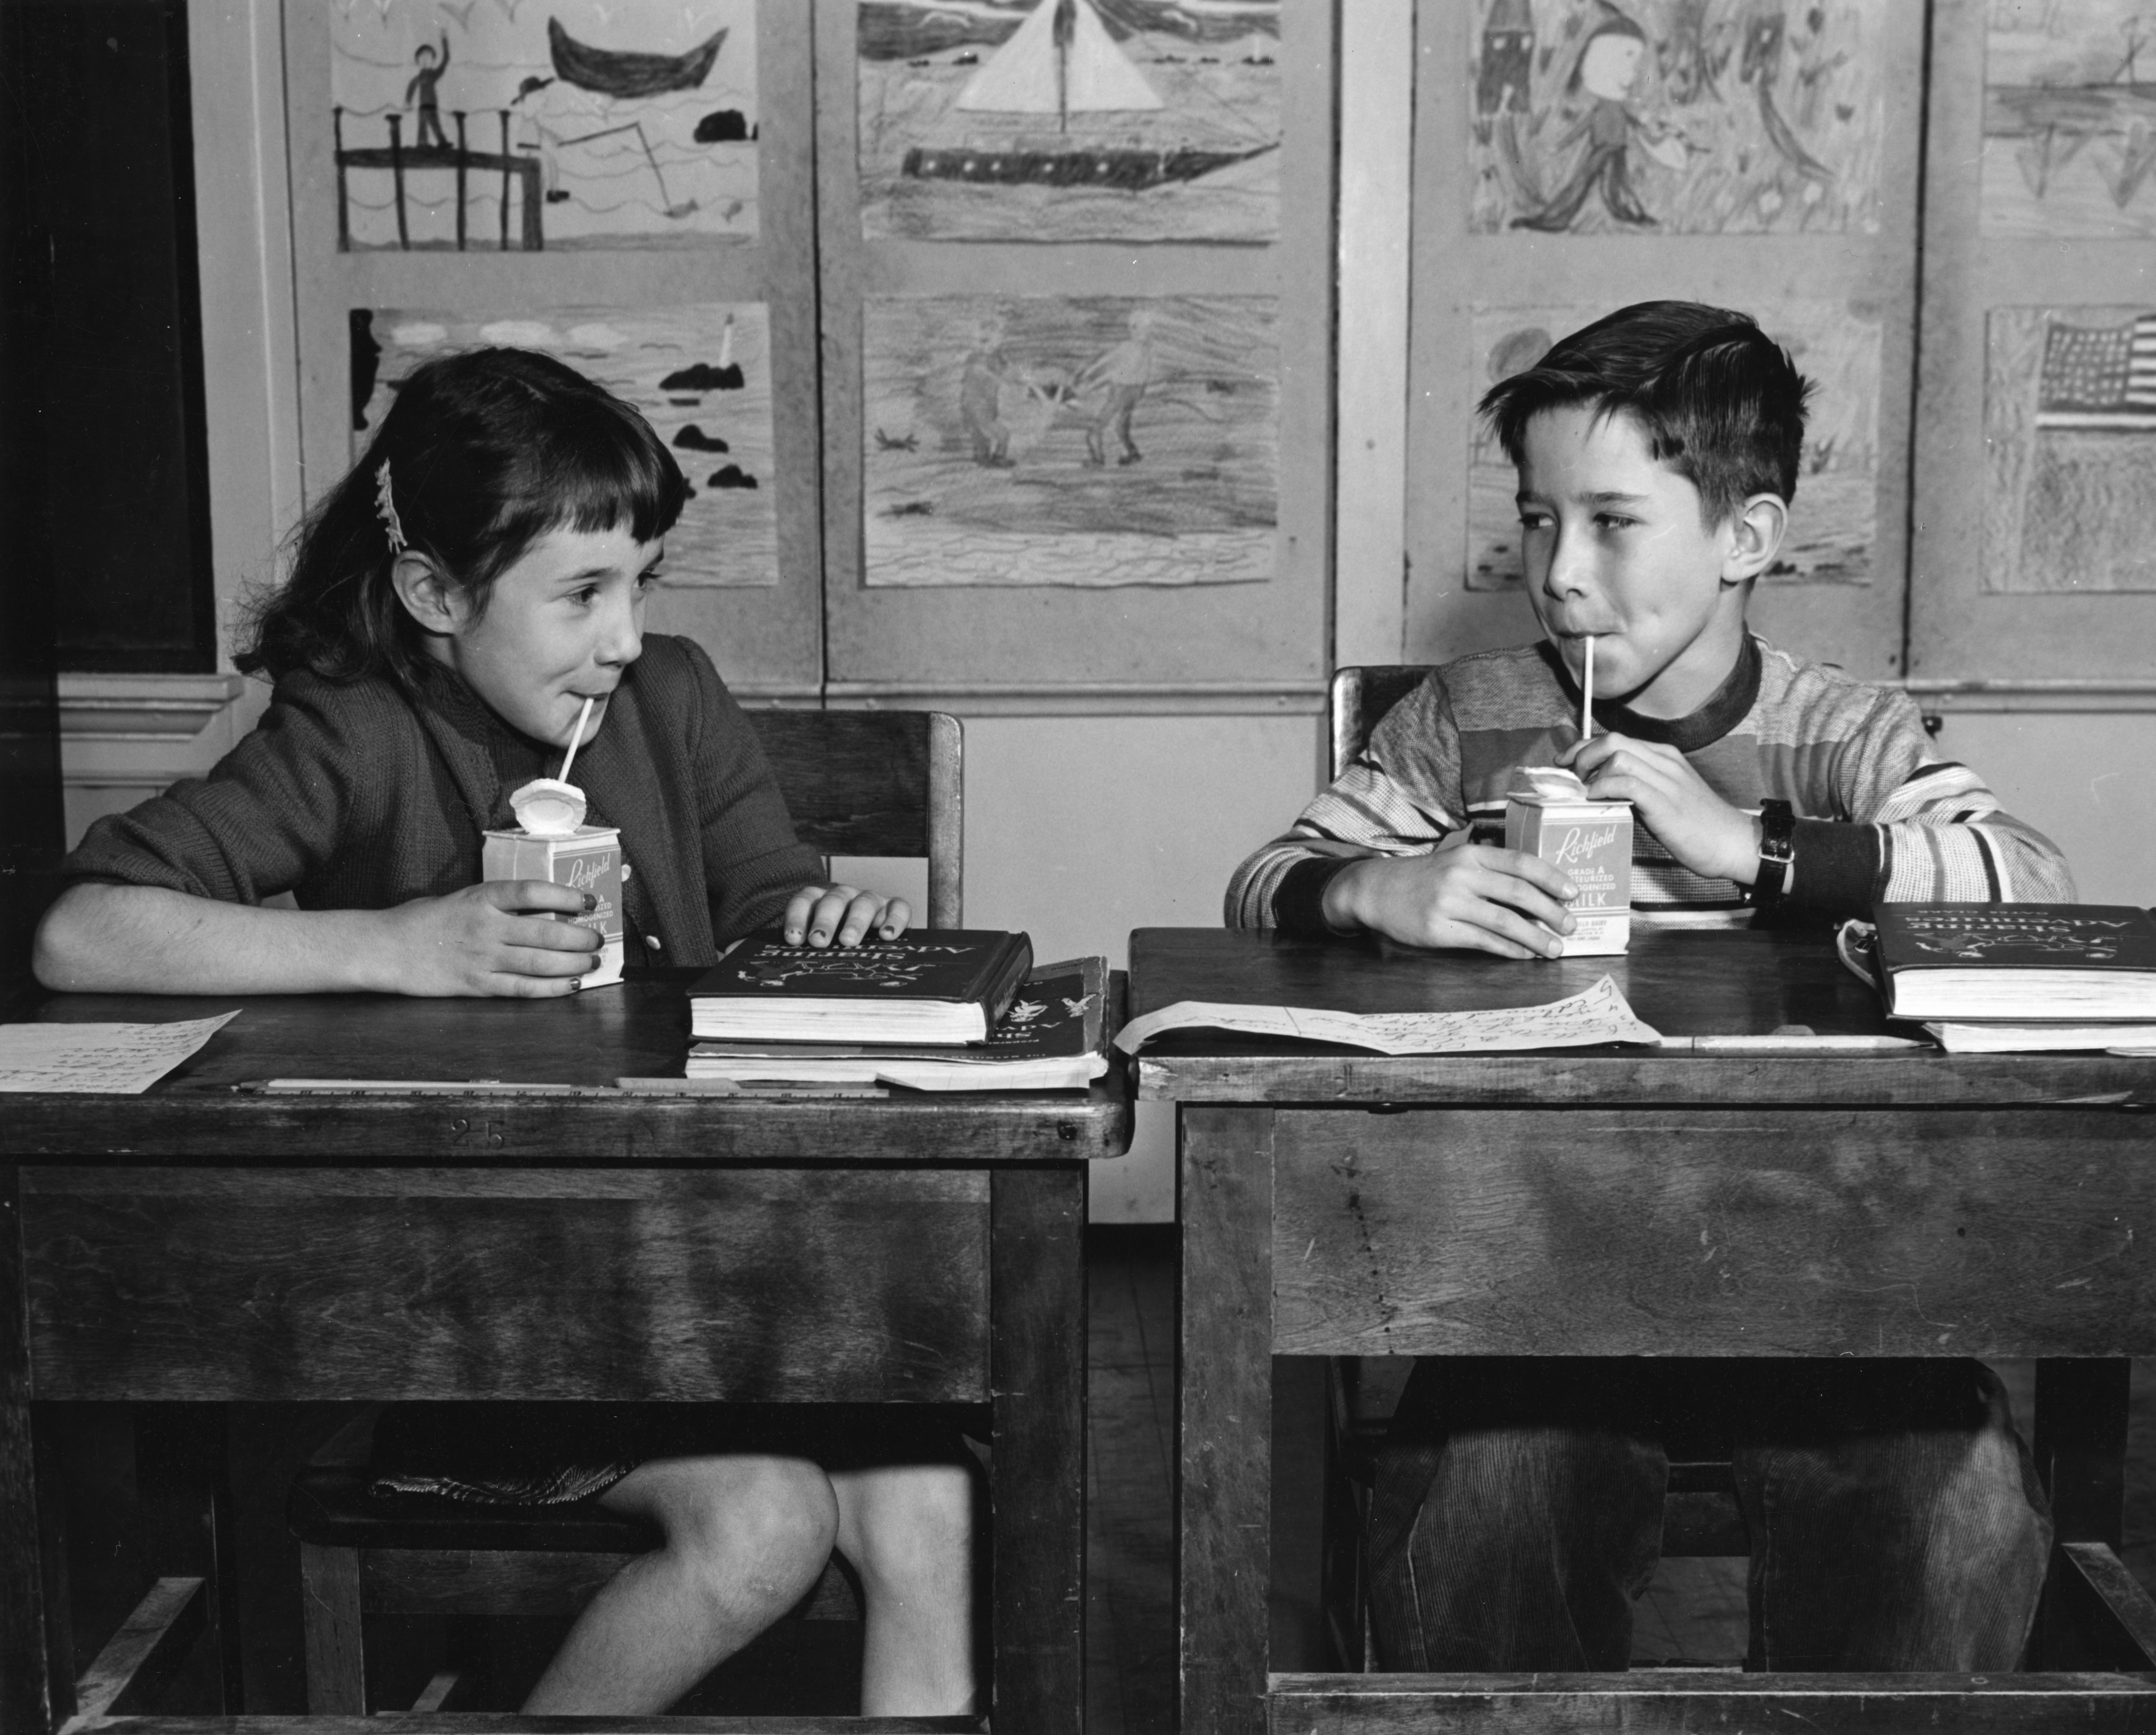 Young girl and young boy sitting at desks looking at one another while drinking from cartons of milk